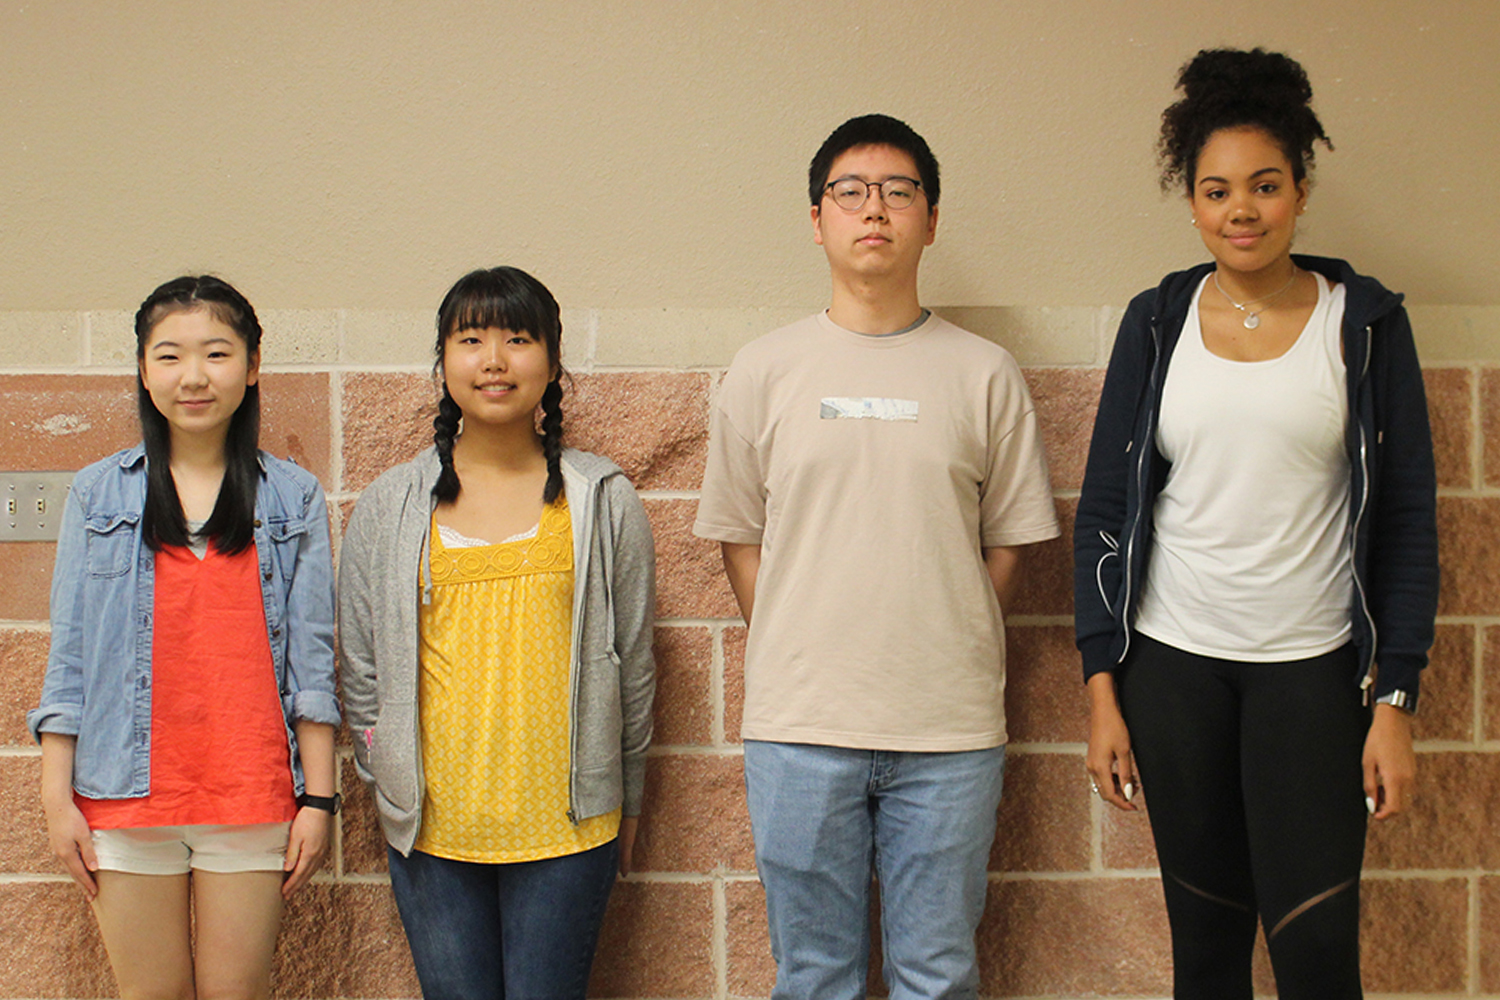 Foreign exchange students (from left to right) Riko Miyata, Mizuki Kita, Marie Anyiam, and Ricky Lee pose for a group photo.